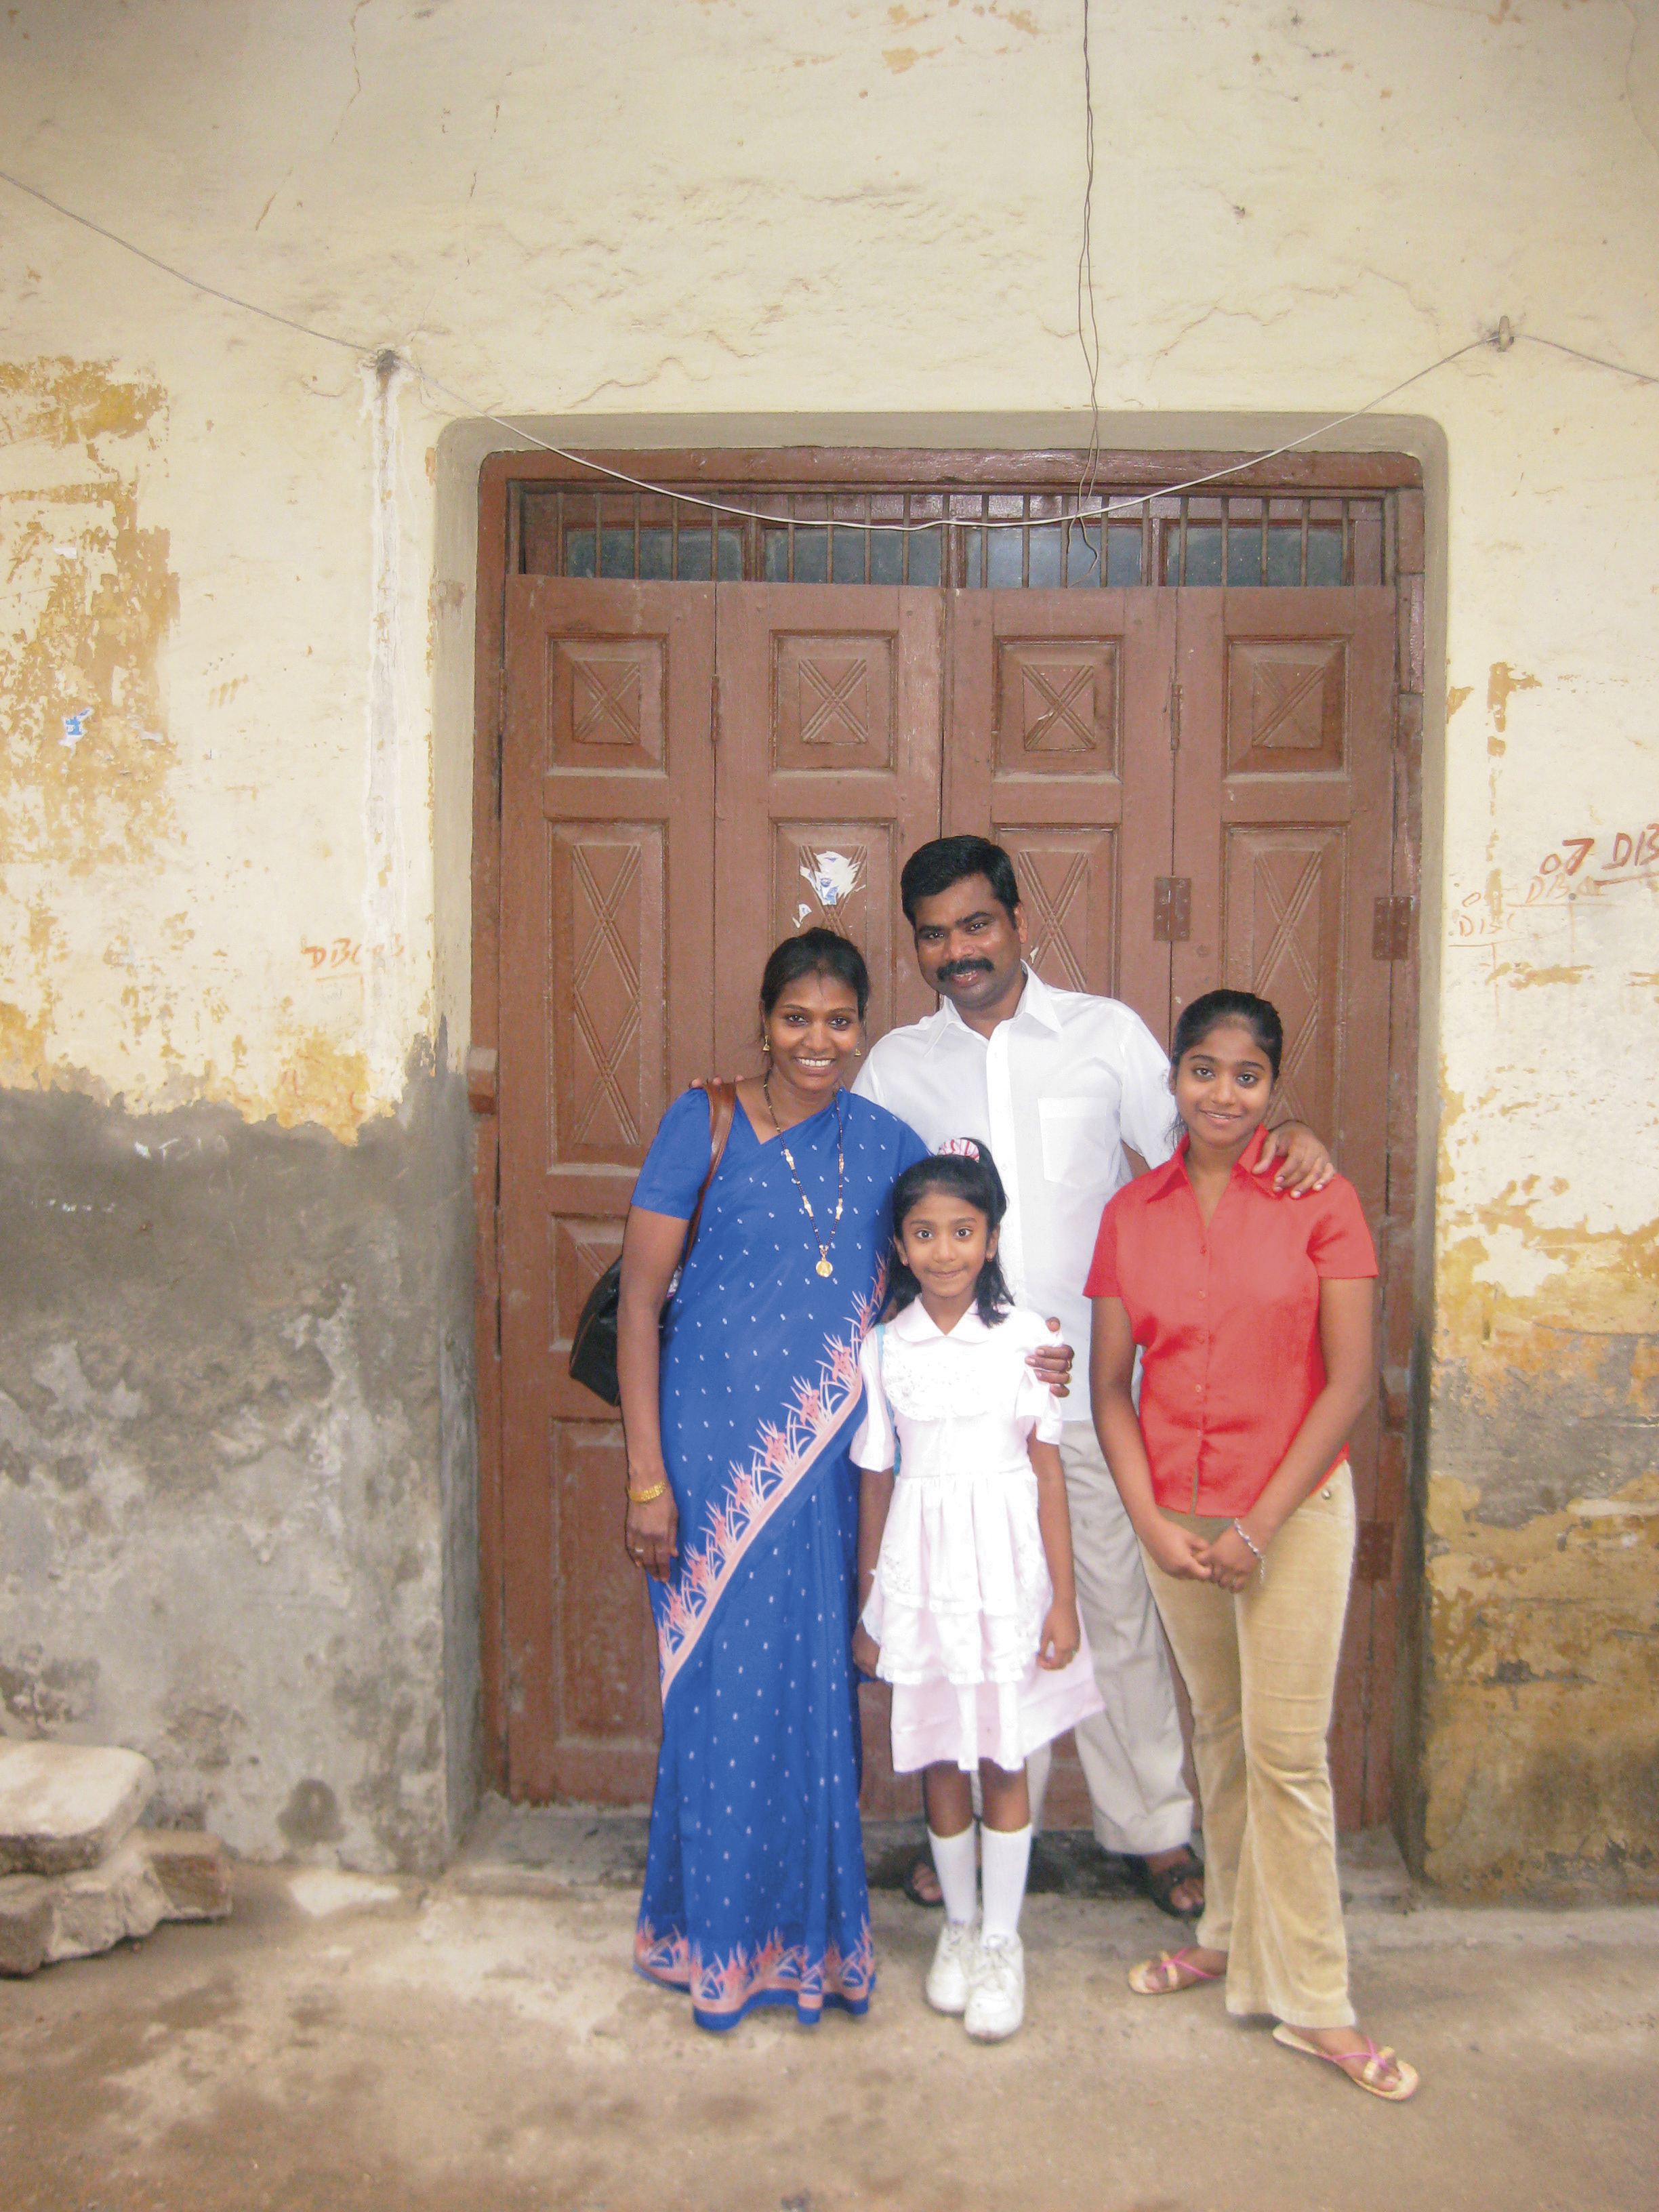 A portrait of a family in New Delhi standing together outside.